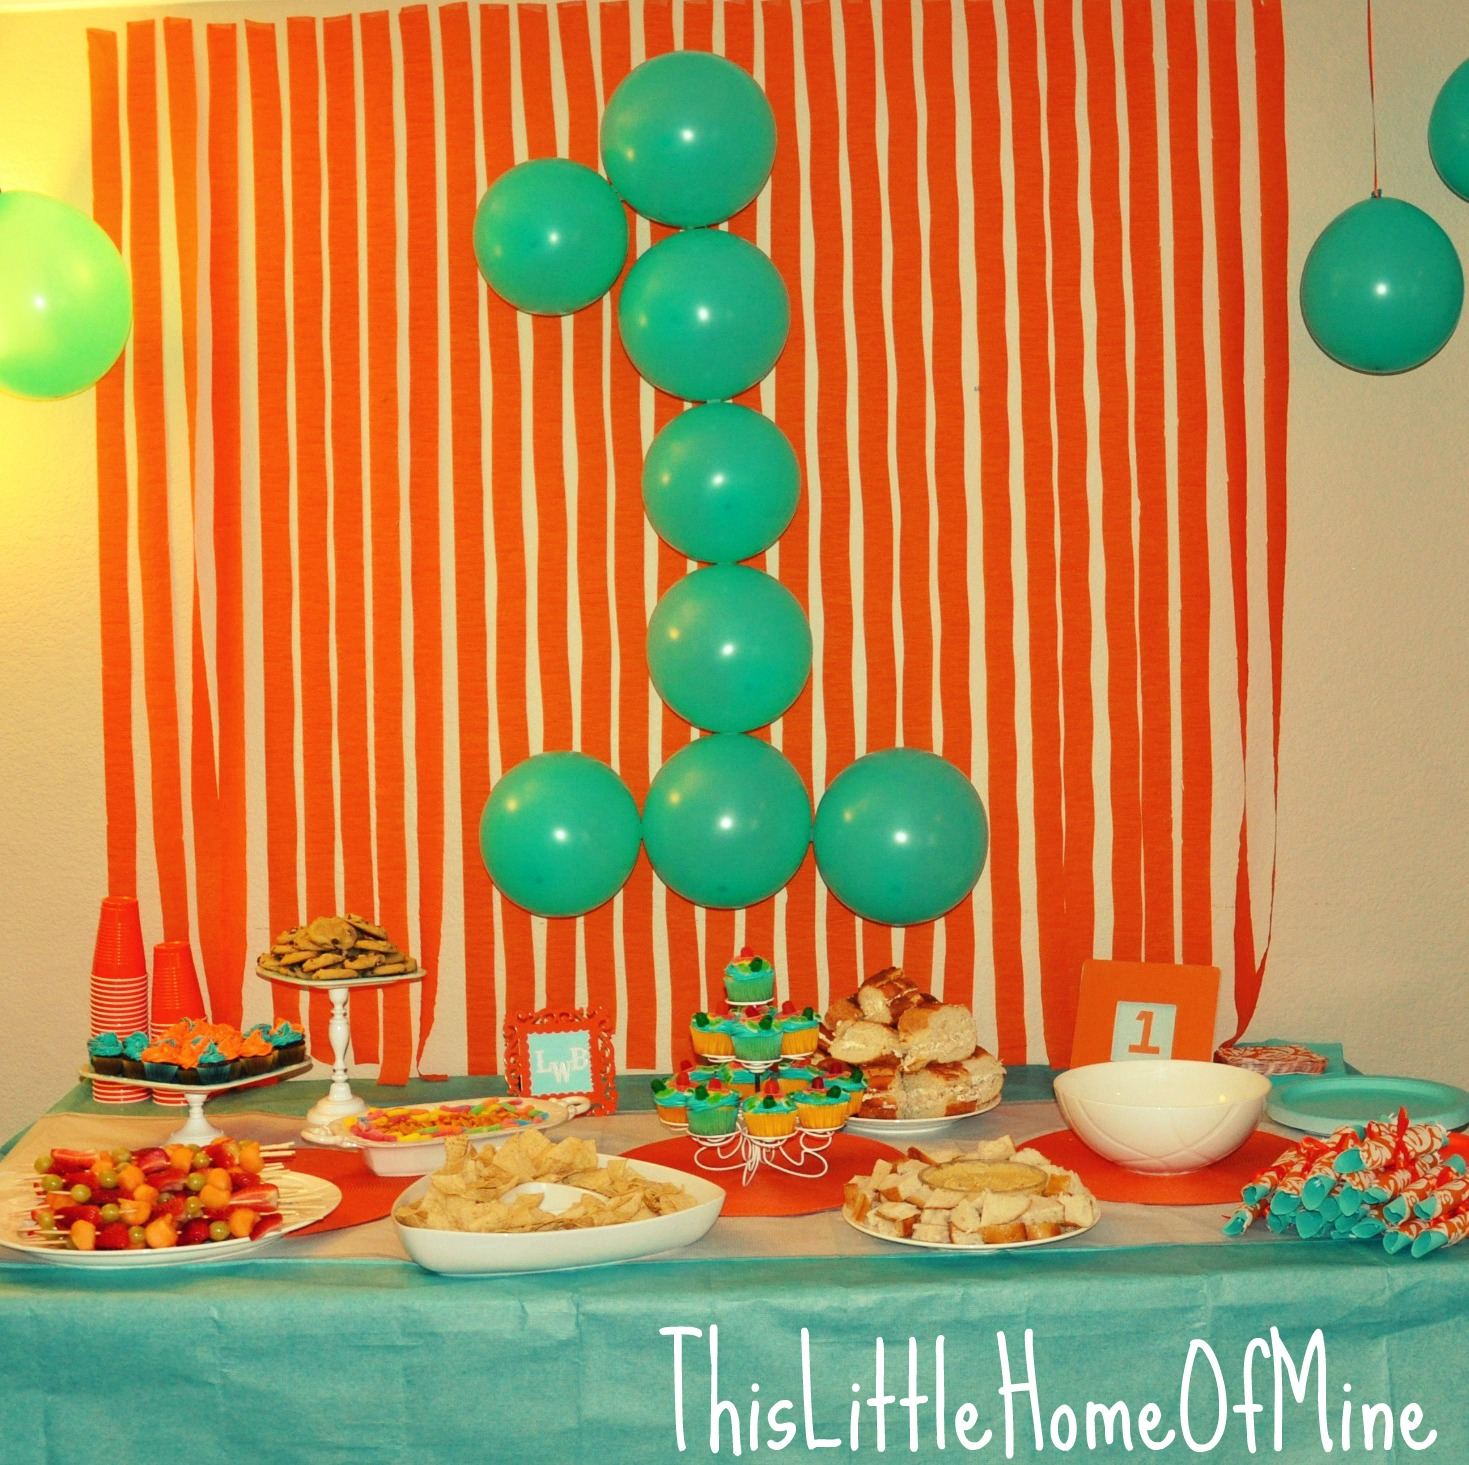 This little home of mine a very first birthday party for 1st birthday decoration pictures